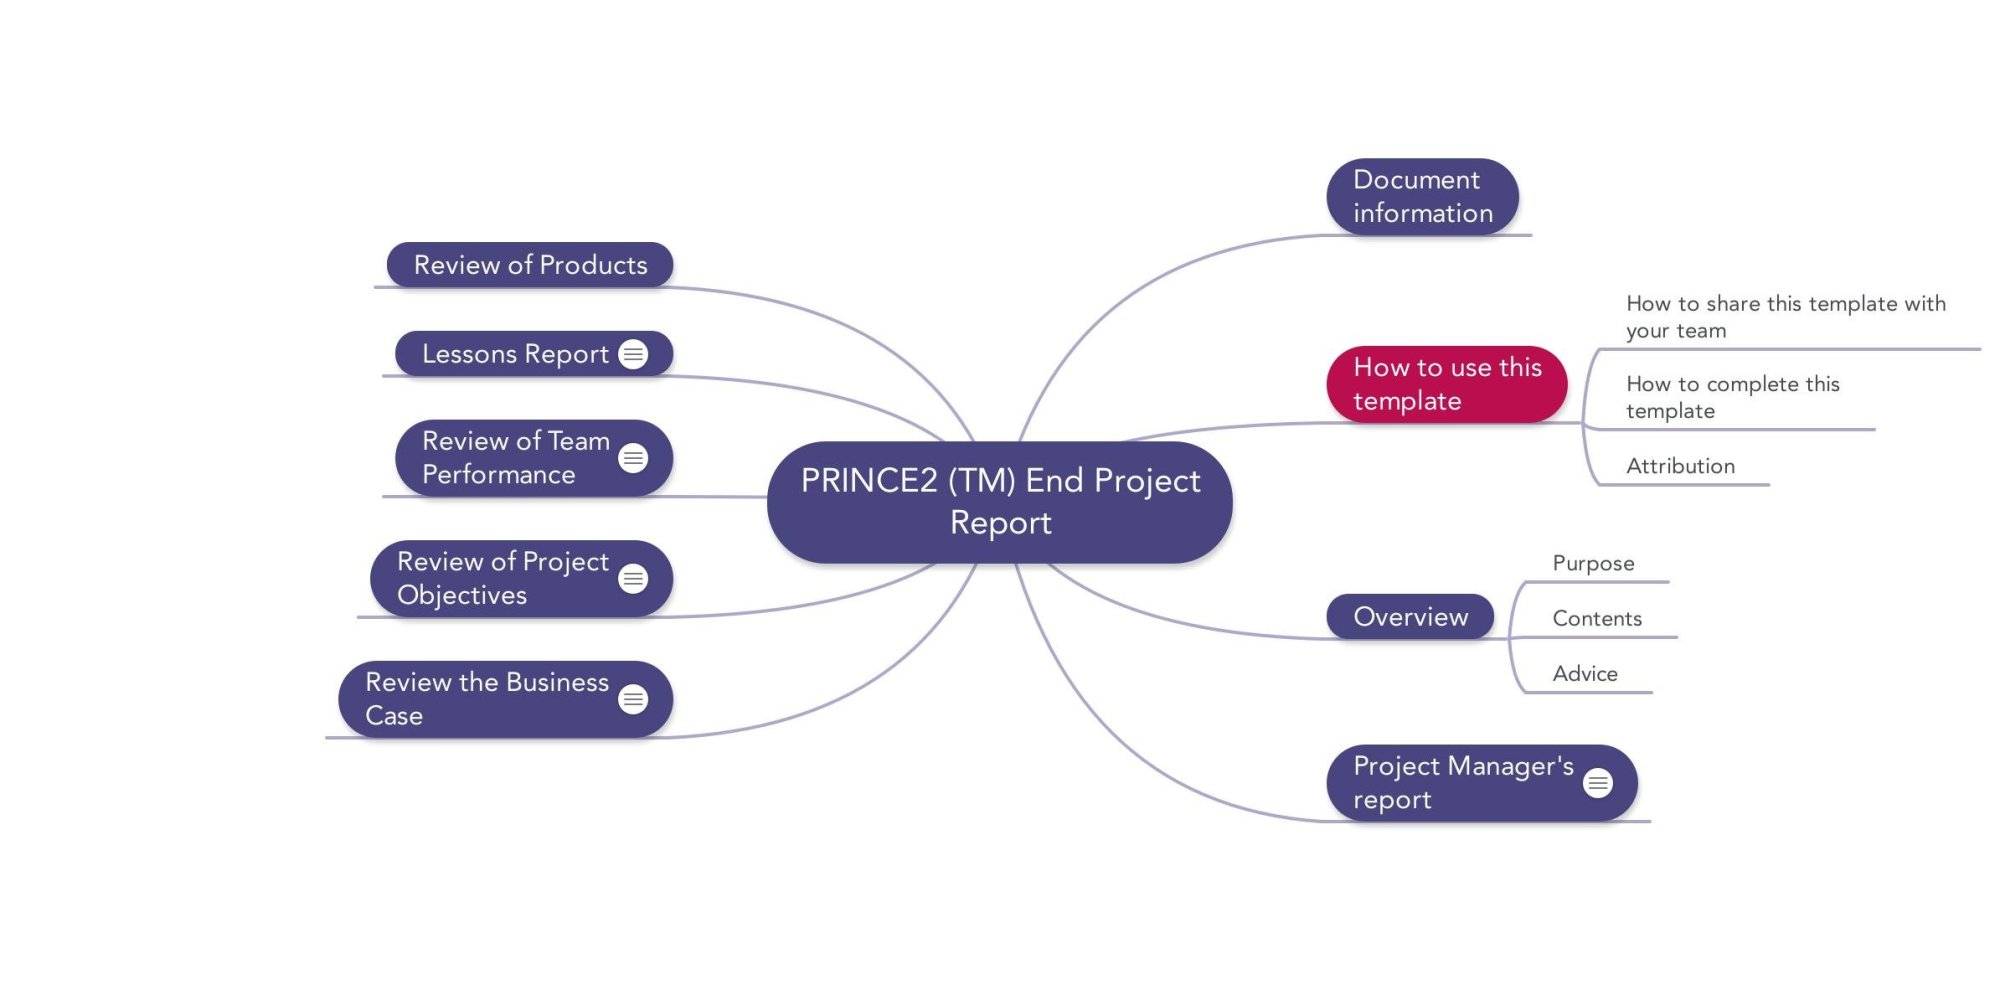 hight resolution of image of prince2 mindmap end project report template